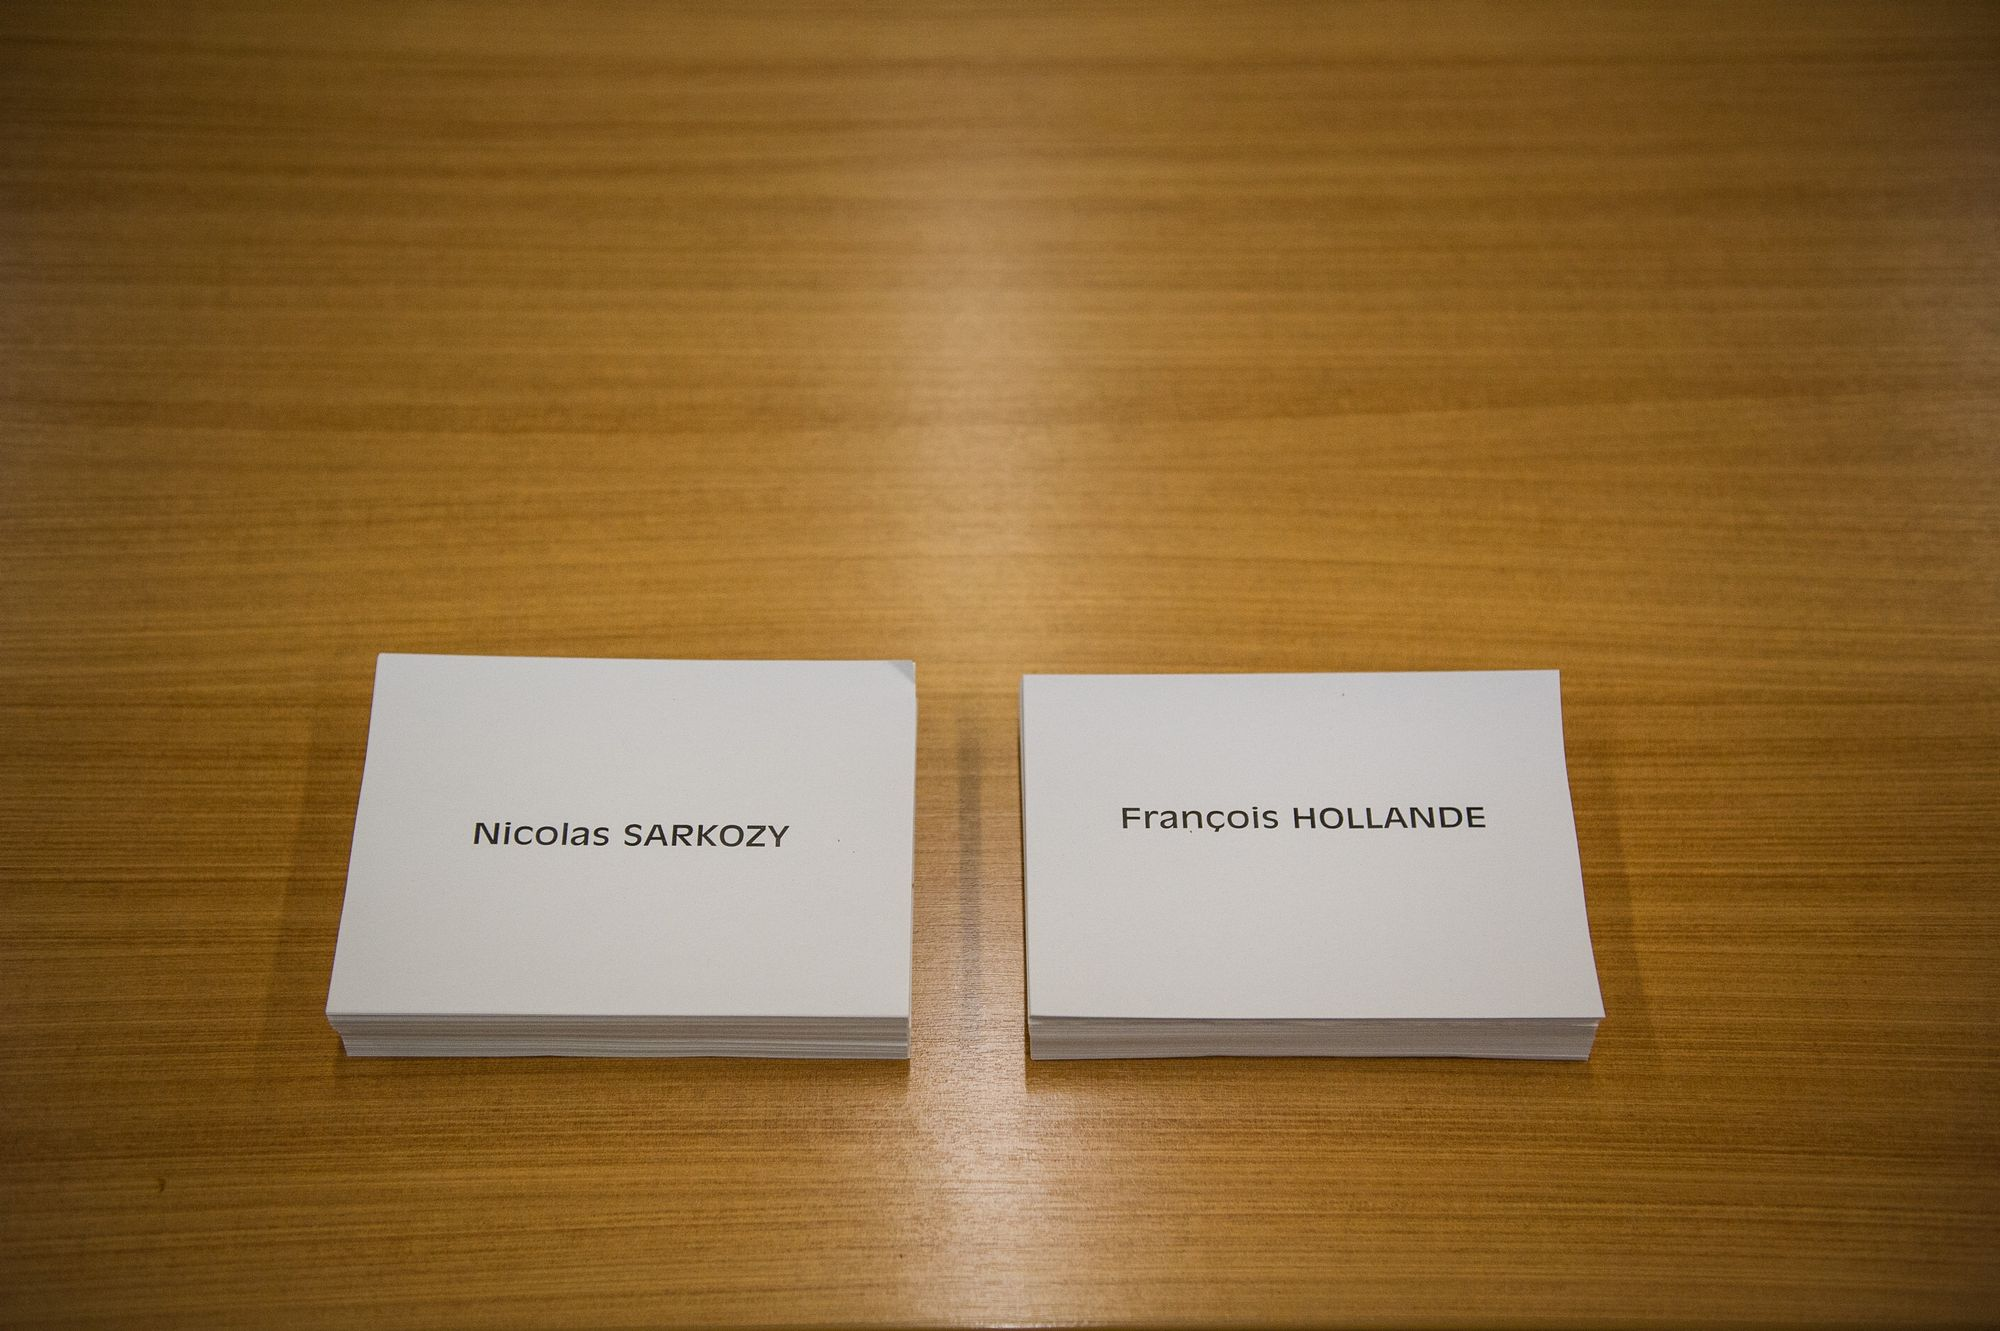 Bulletin de vote Sarkozy et Hollande.